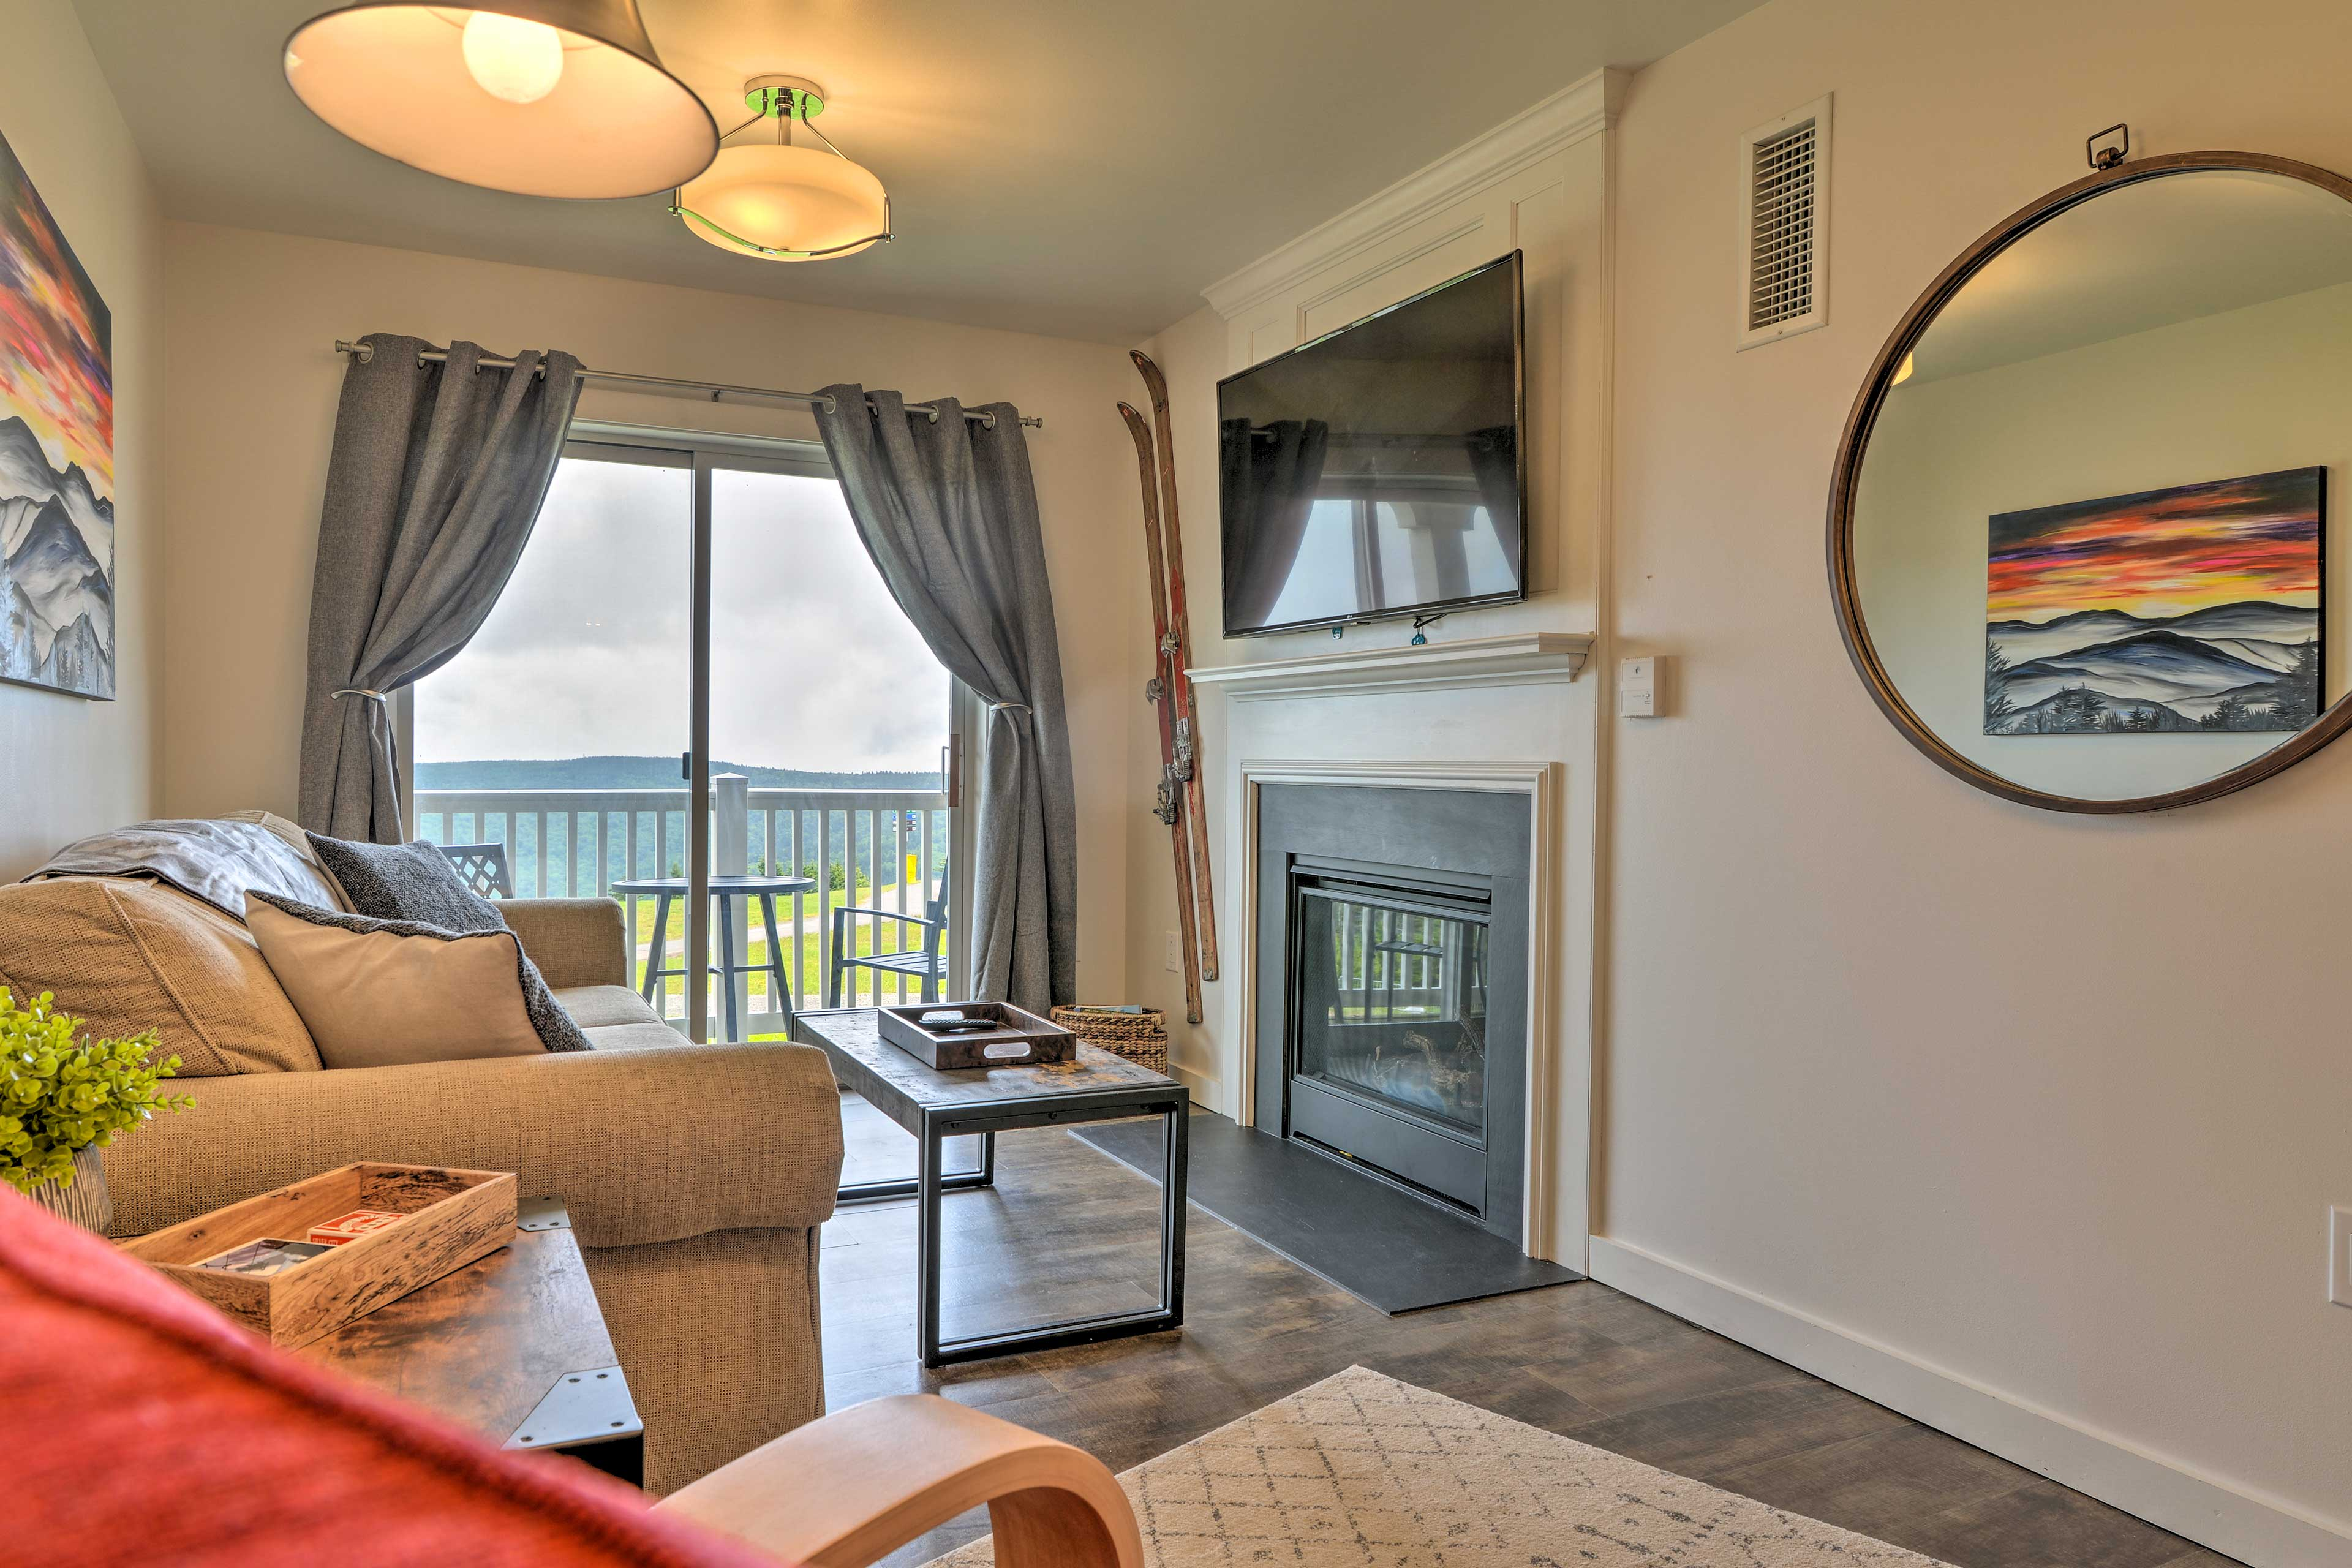 Relax in front of the flat-screen TV and gas fireplace.